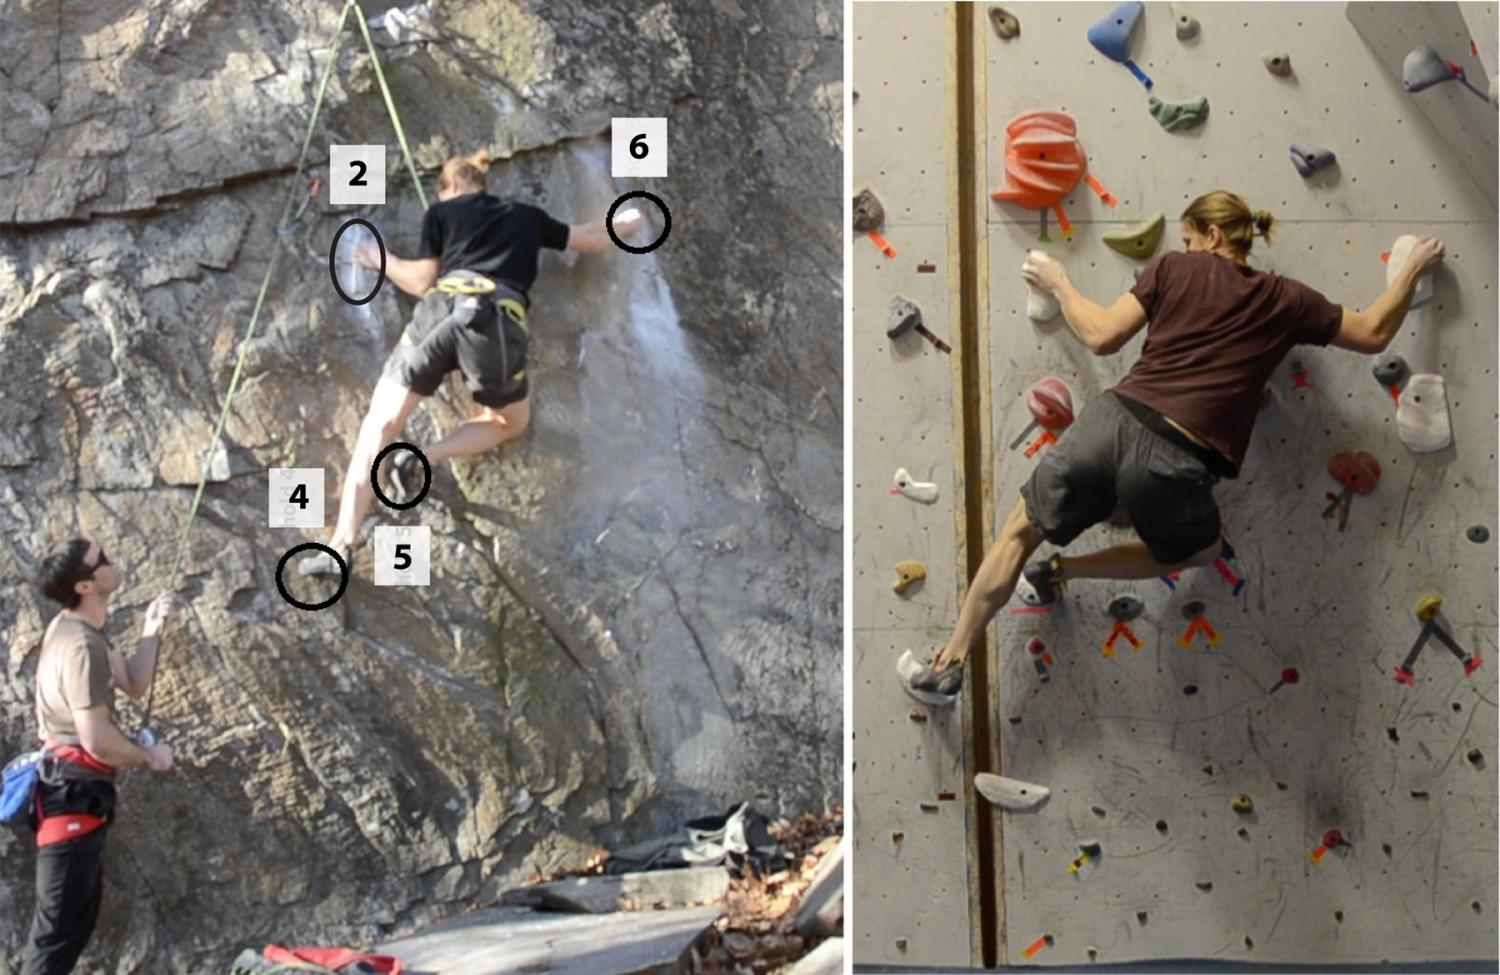 Expert Rock Climbing Routes Recreated Indoors Using 3 D Modeling And Digital Fabrication